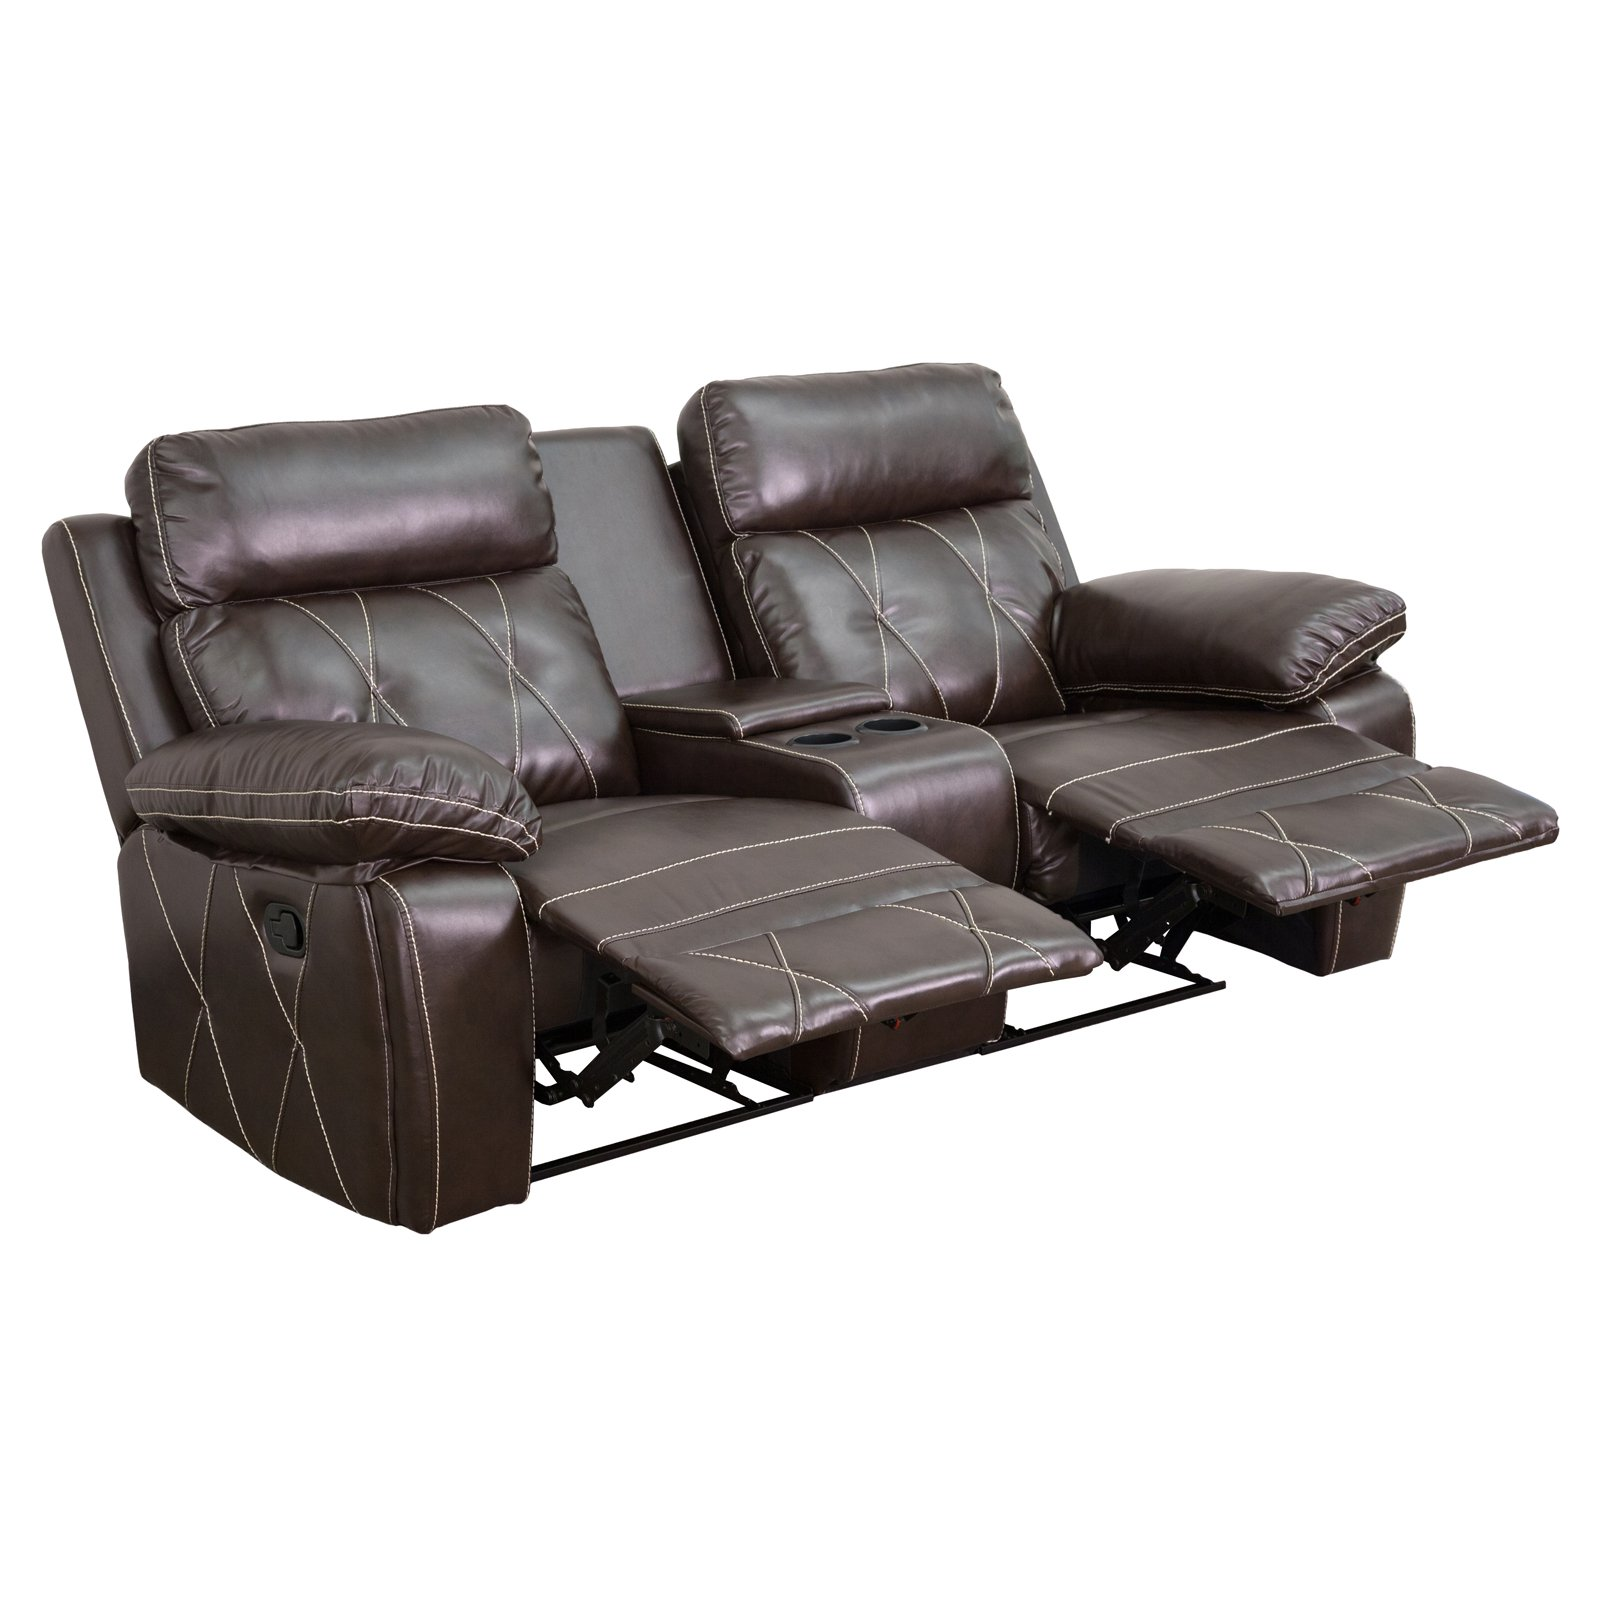 Flash Furniture Reel Comfort Series 2-Seat Reclining Leather Theater Seating Unit with Straight Cup Holders